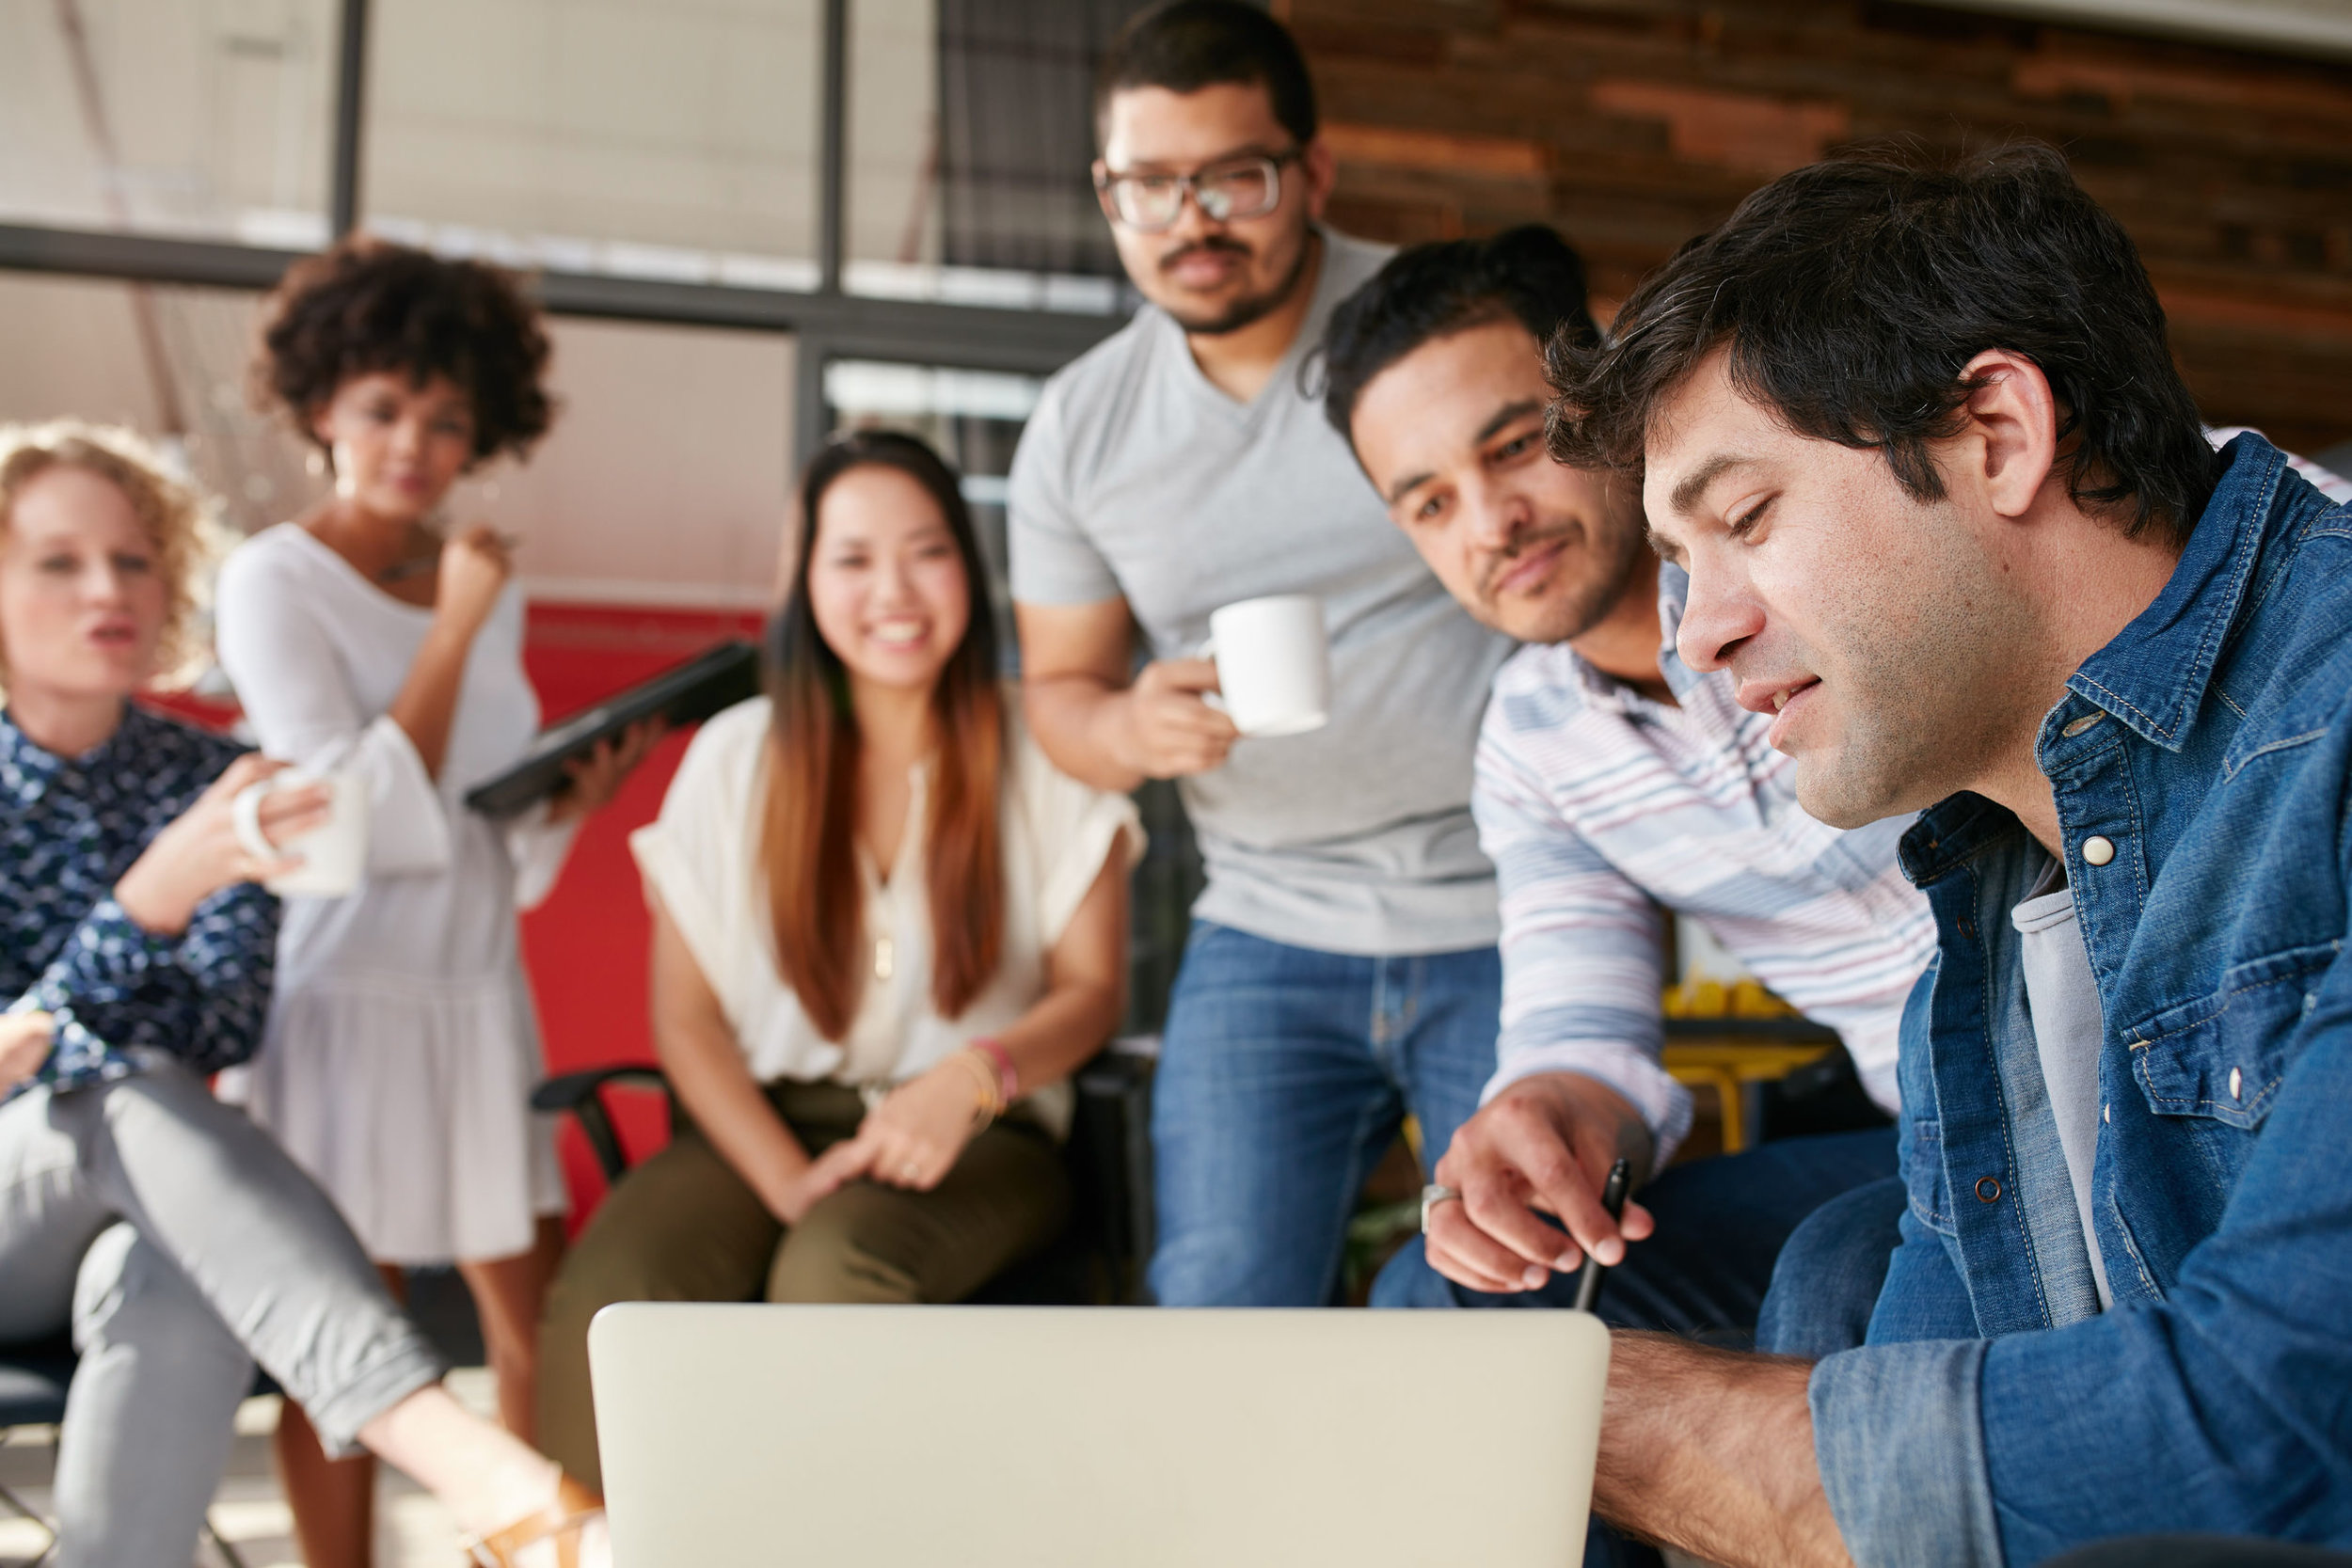 Small businesses and traditional companies alike are embracing the concept of design thinking in problem solving and encouraging employees to push themselves creatively.